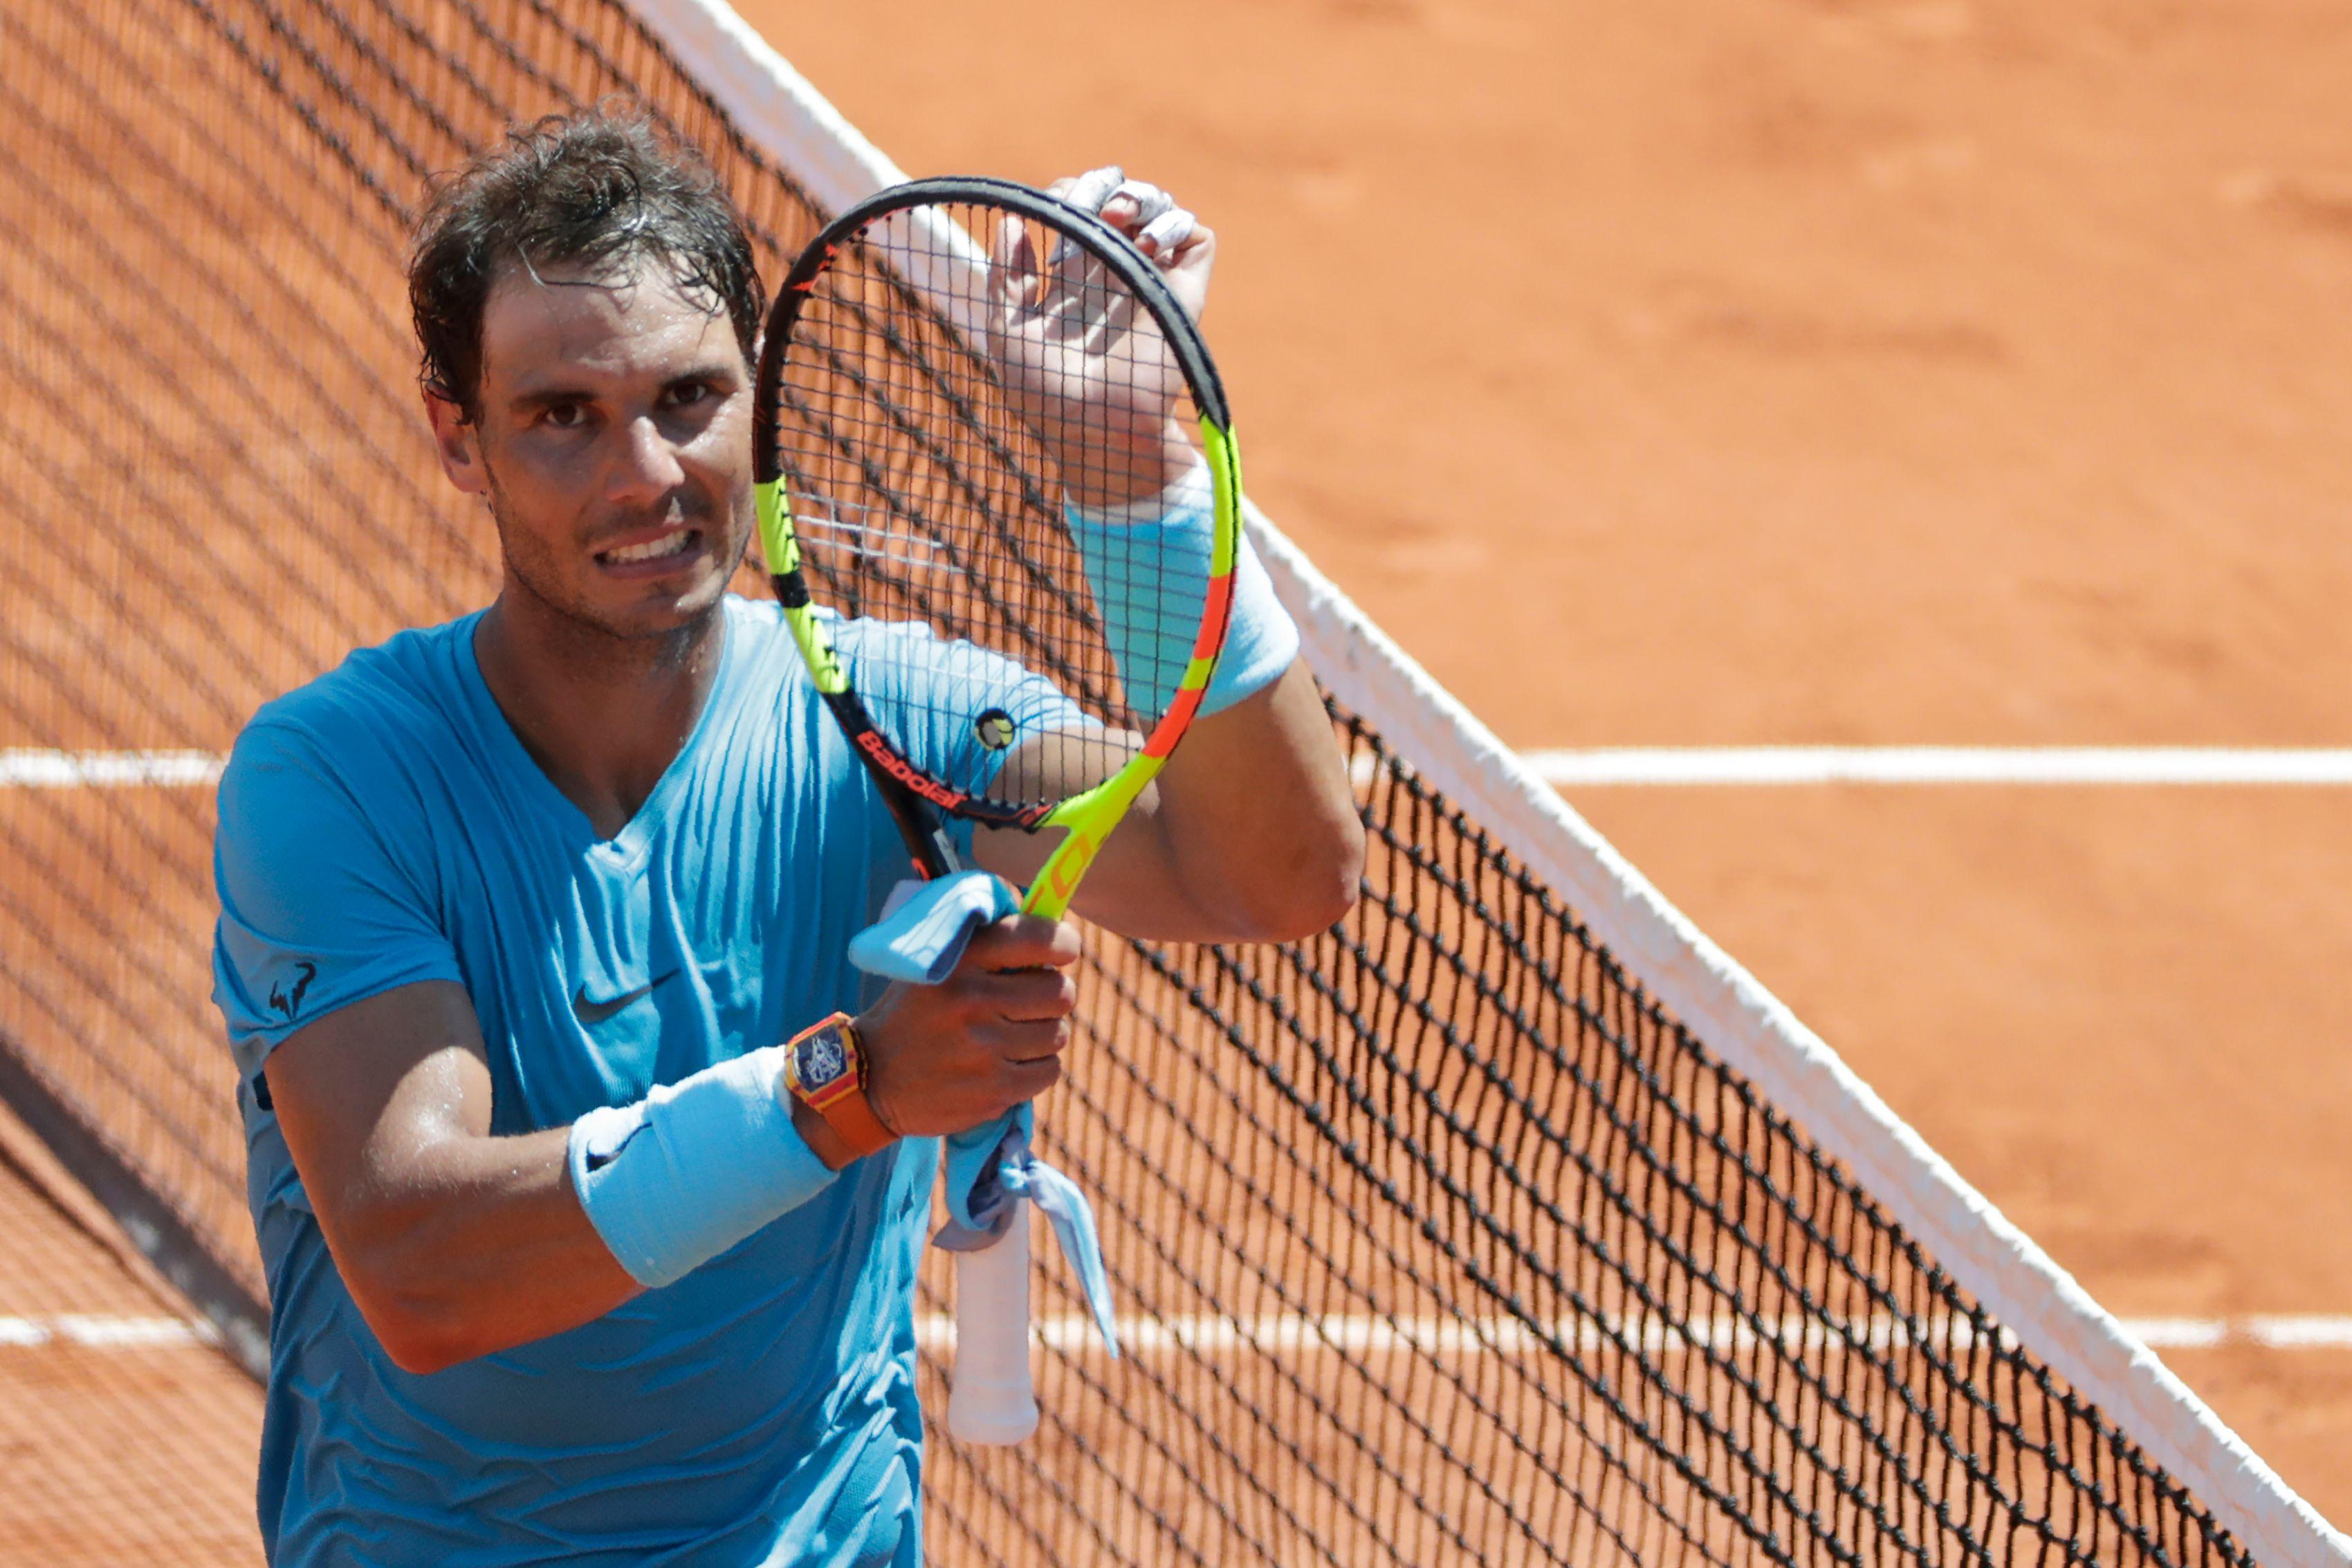 Nadal overcomes nerves to meet del Potro in French Open semi-finals